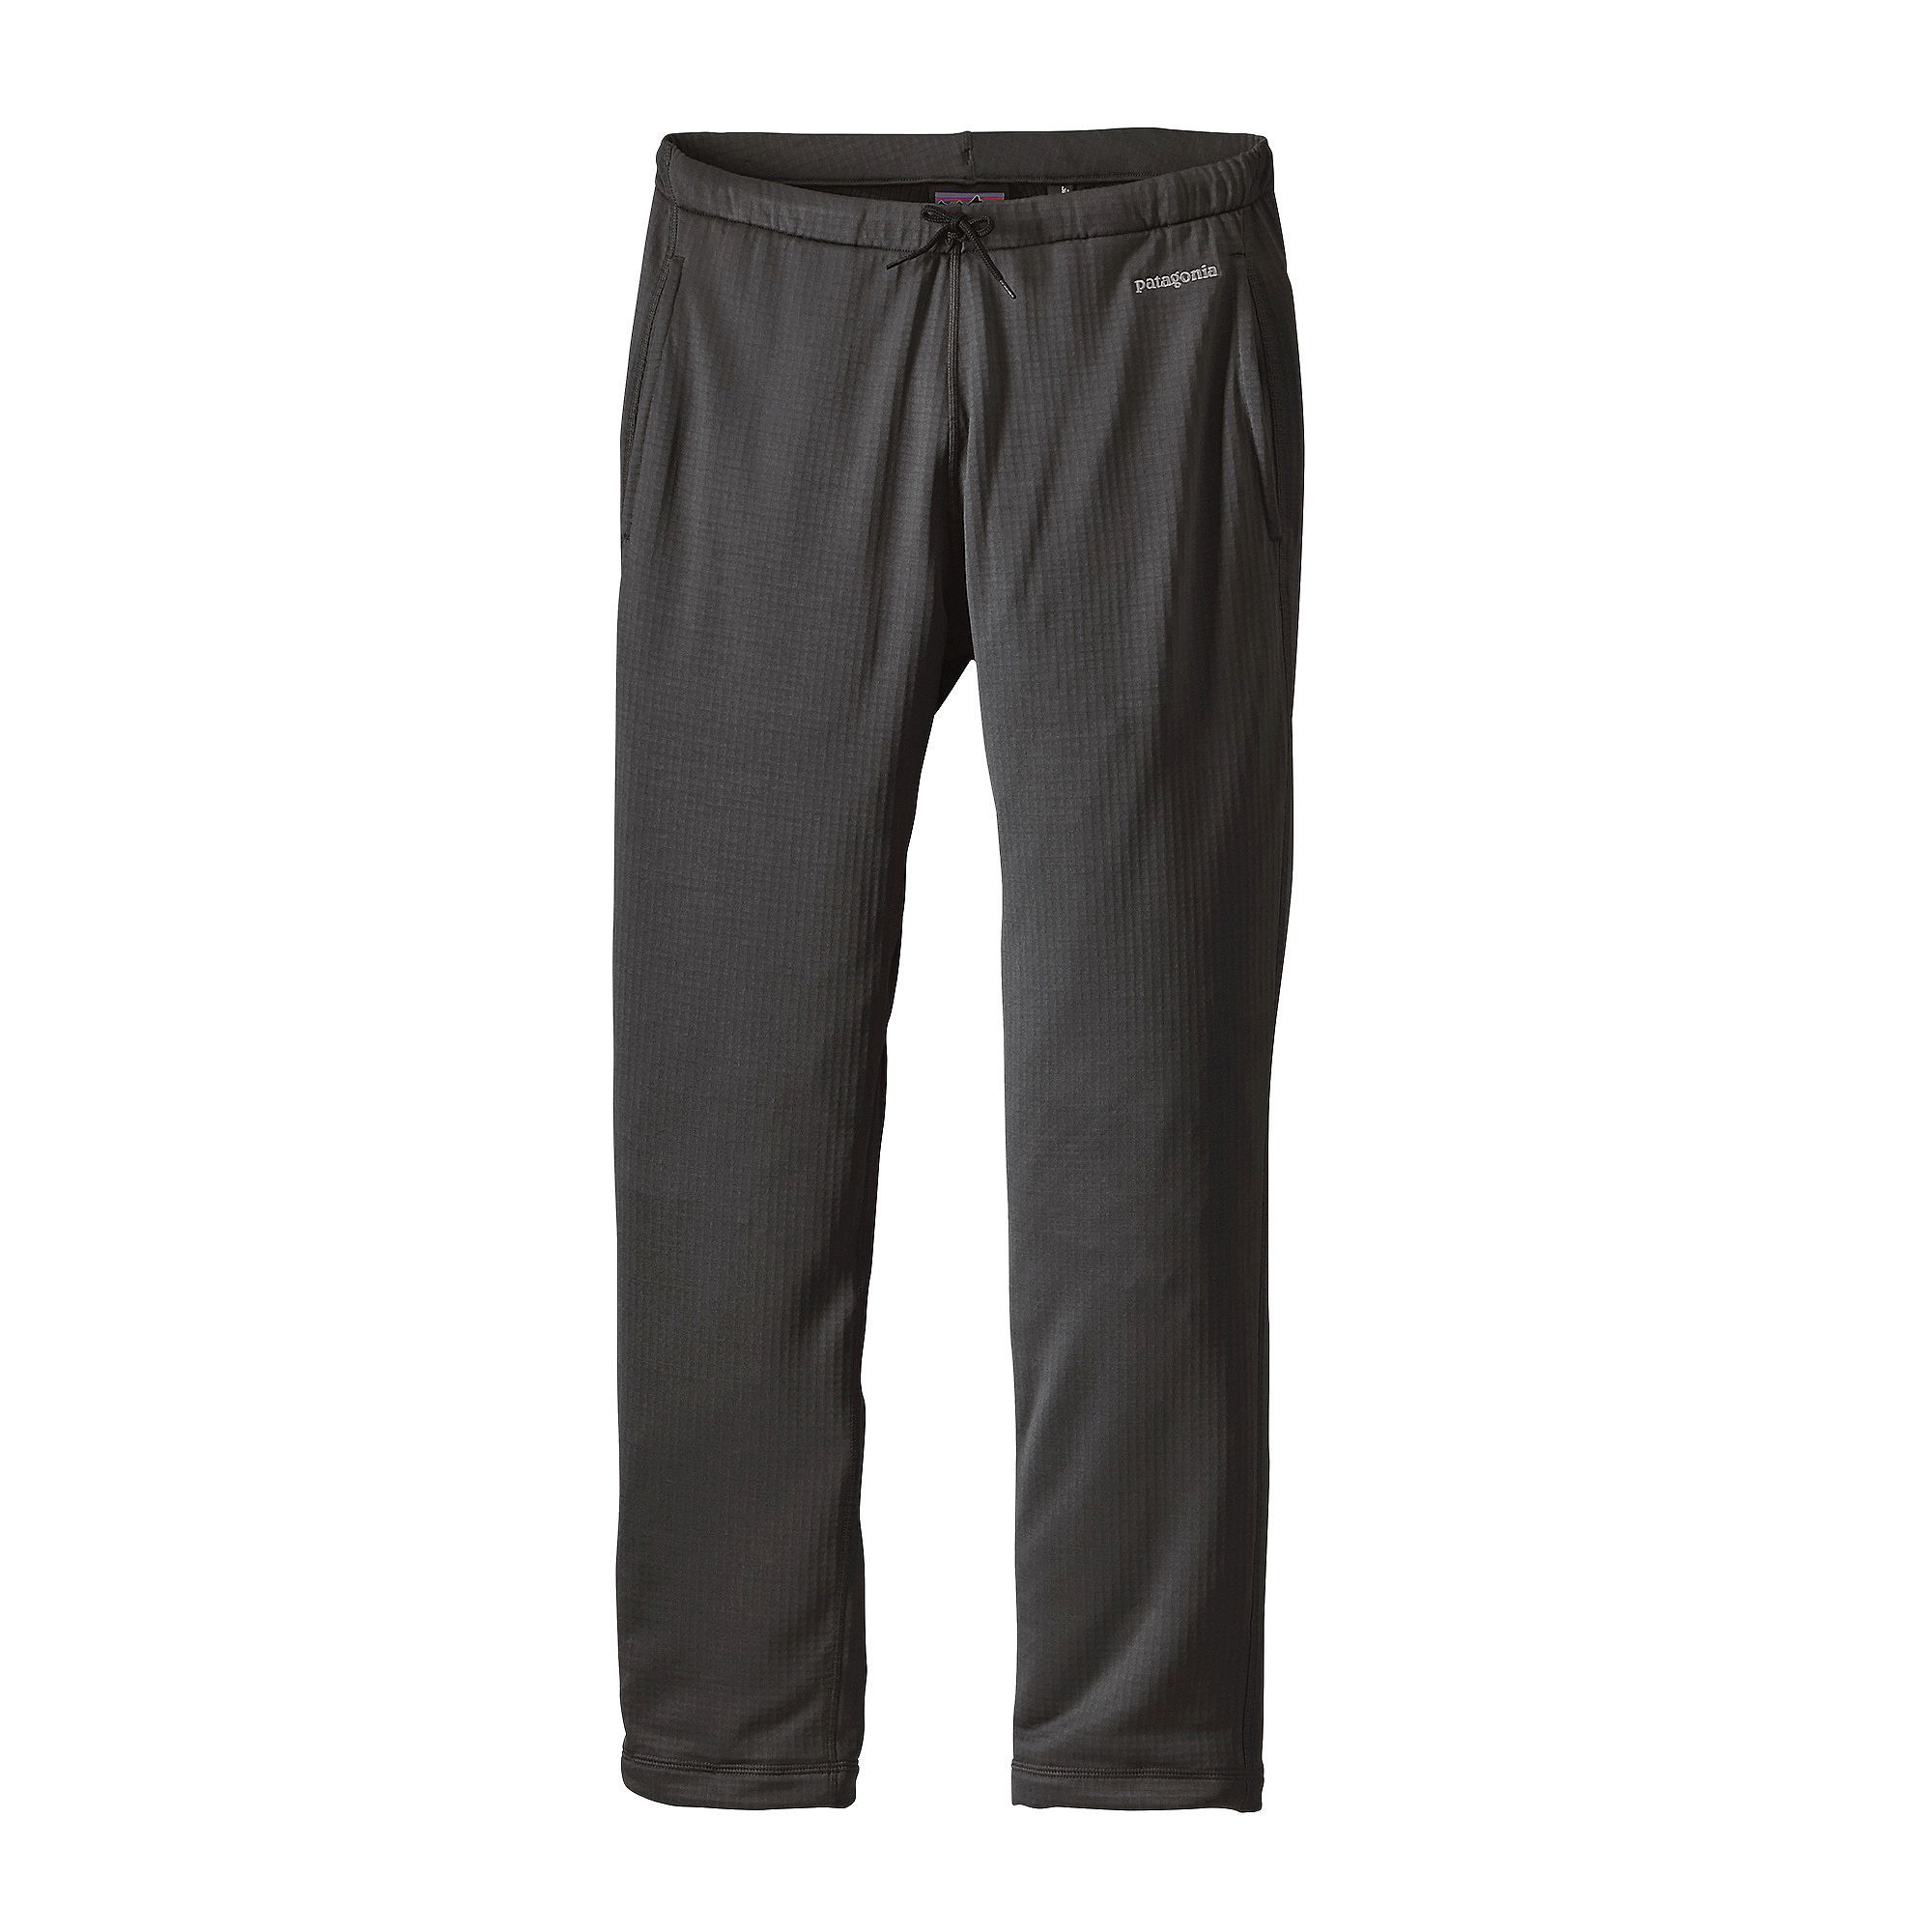 R1® Fleece Pants - The TroutFitter Fly Shop